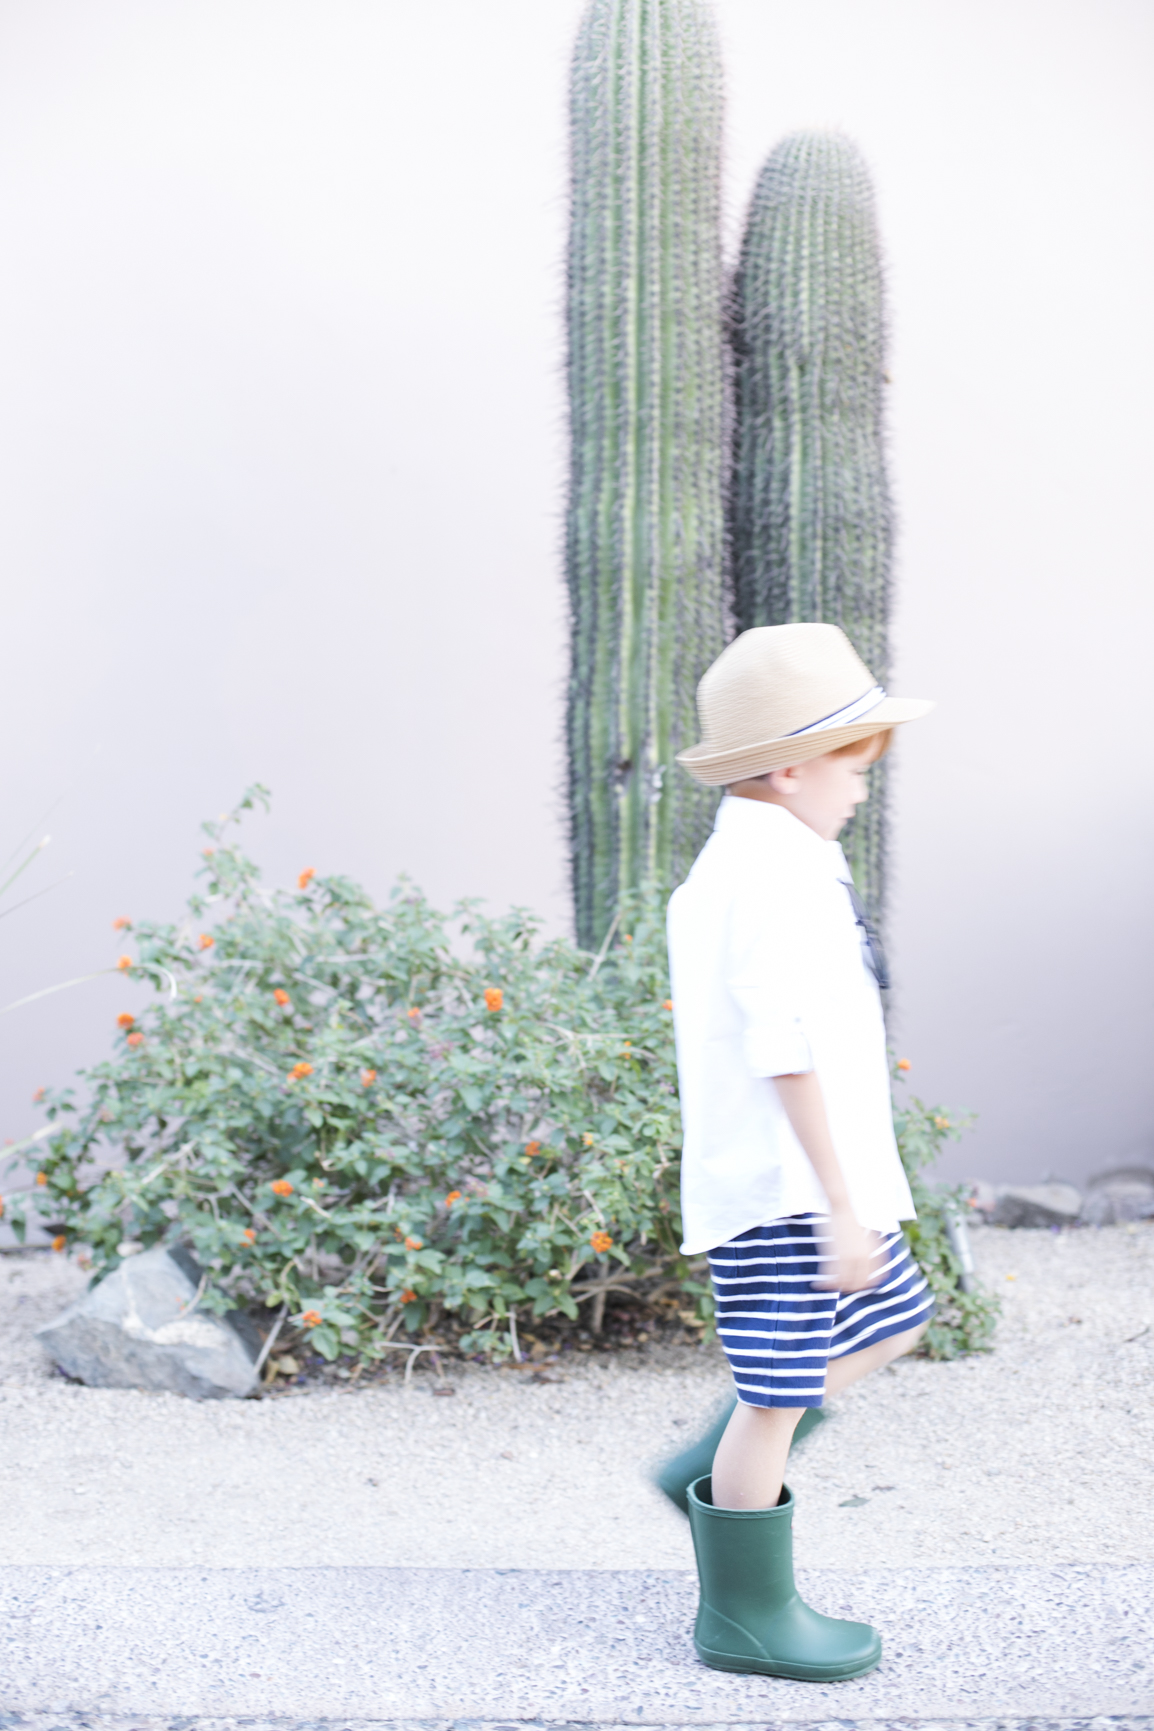 Boys Clothing and Fashion Janie and Jack Resort Wear